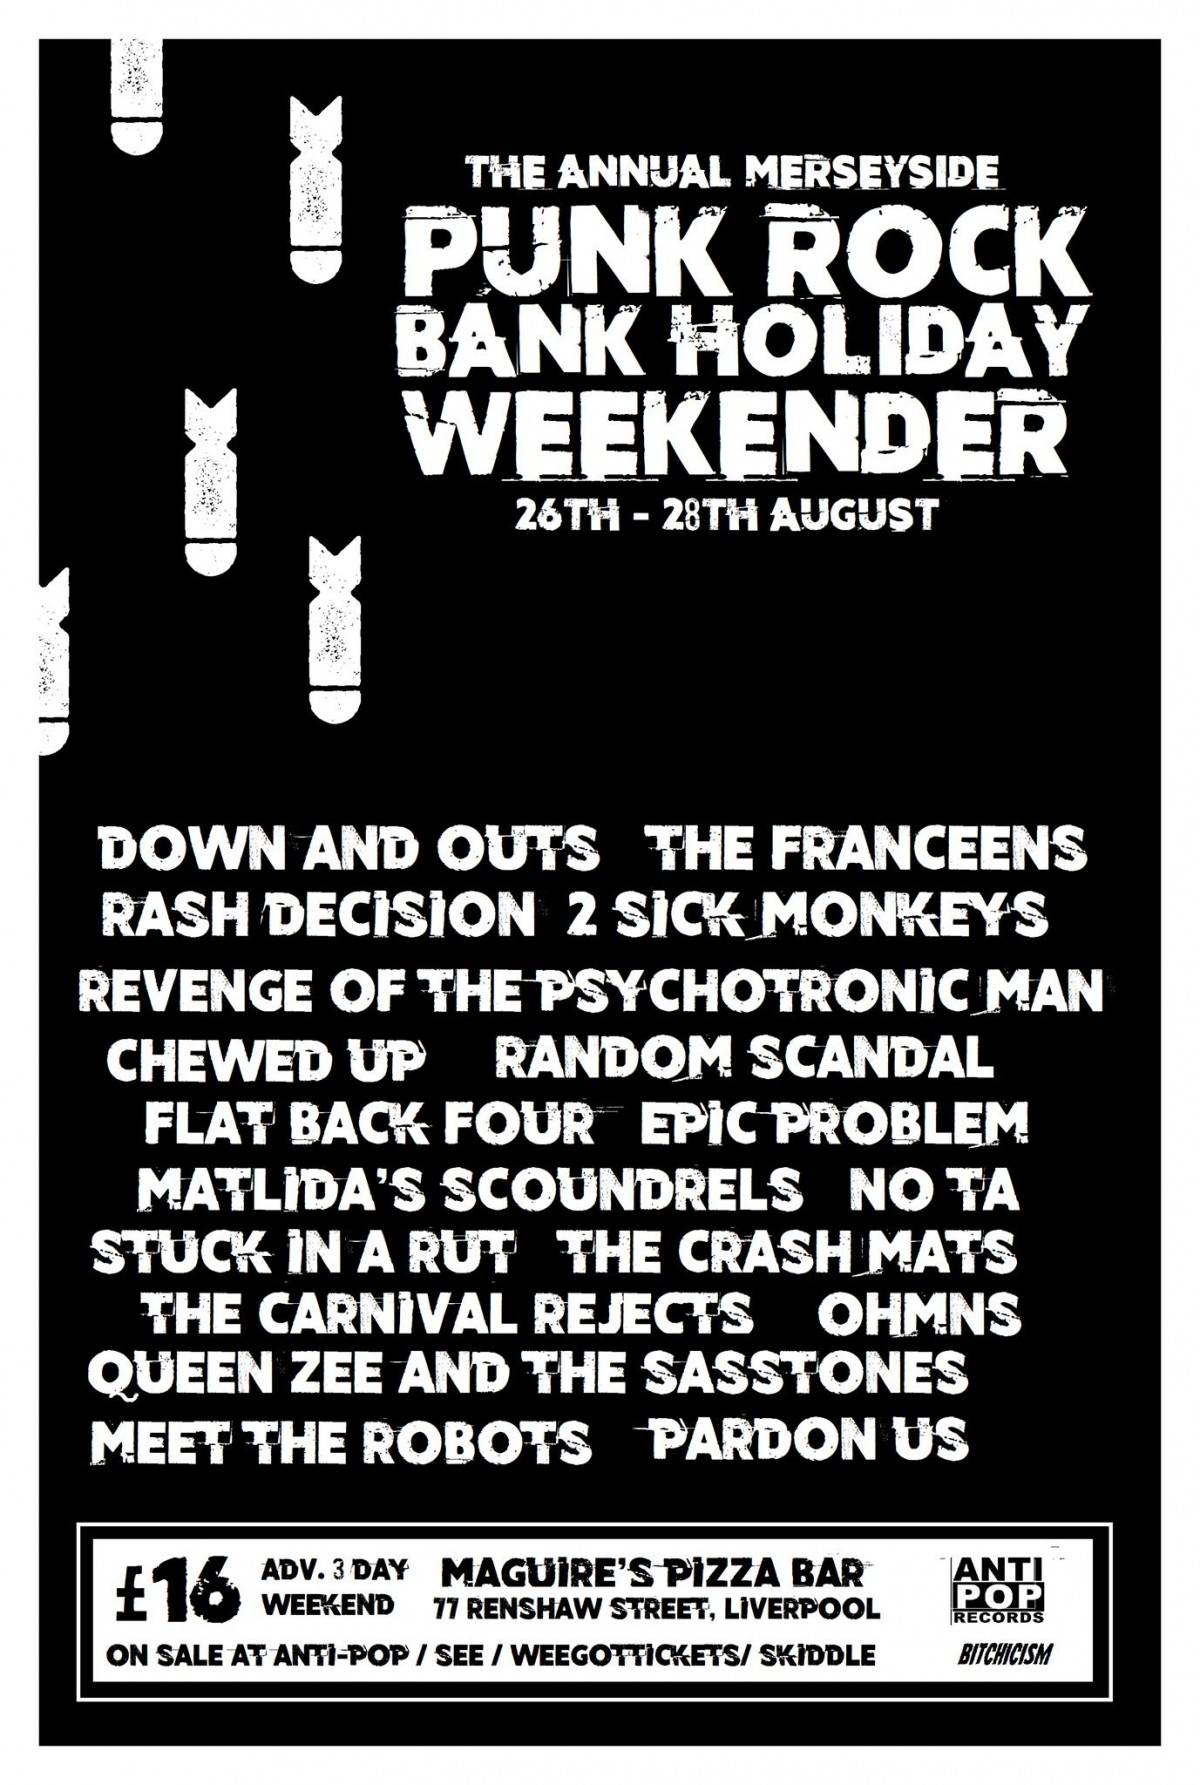 August Bank Holiday Weekender